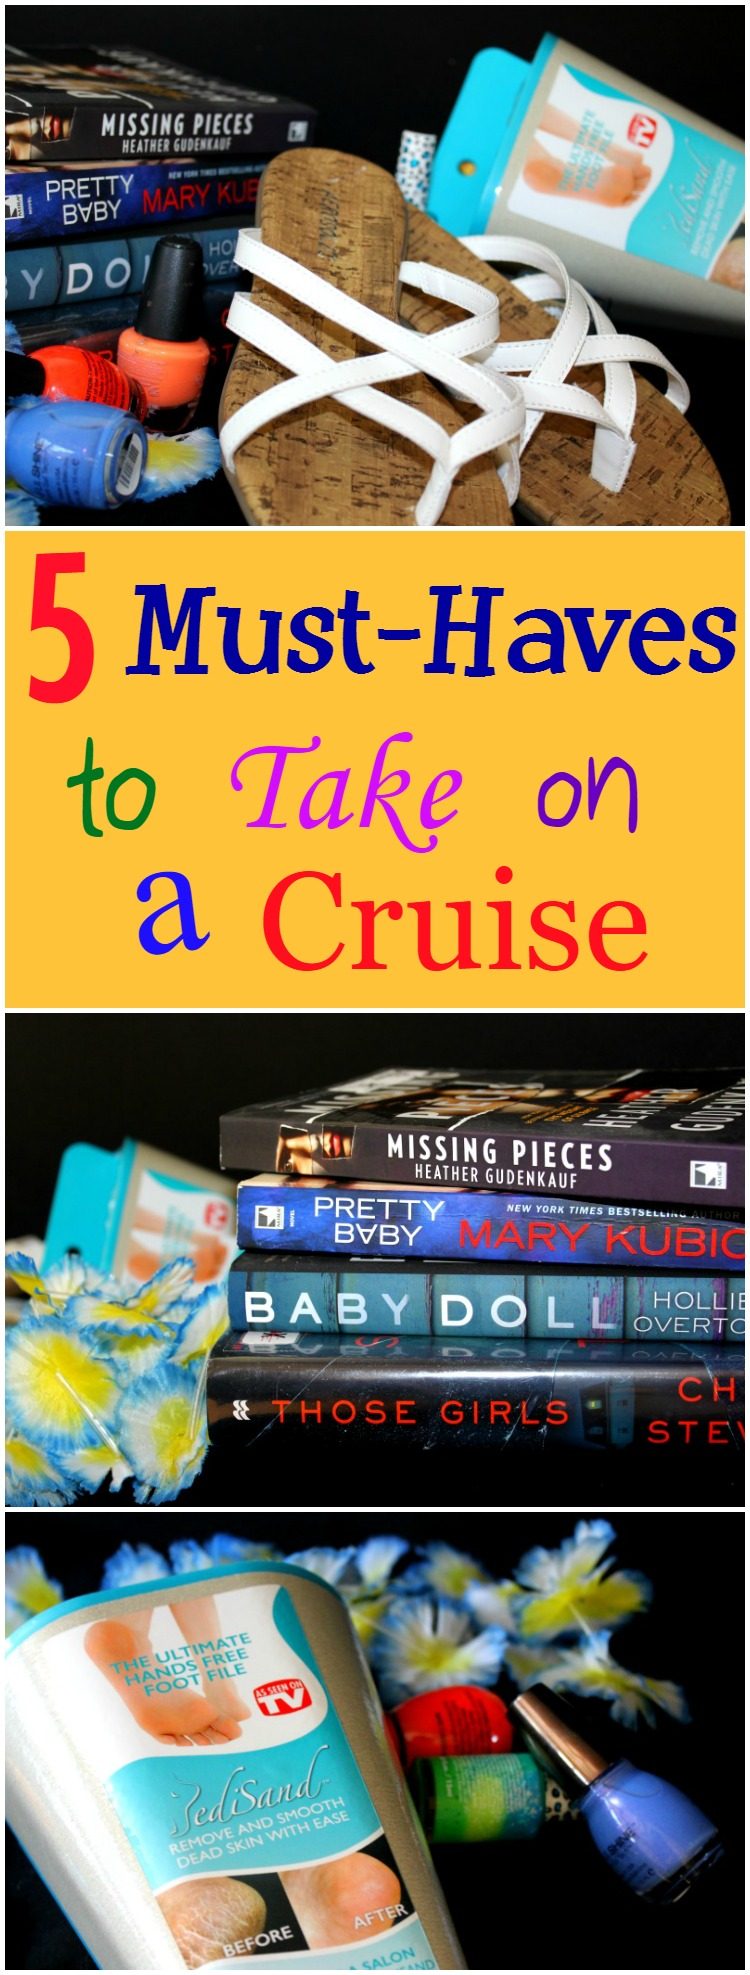 A list of a few things that you should take on a cruise